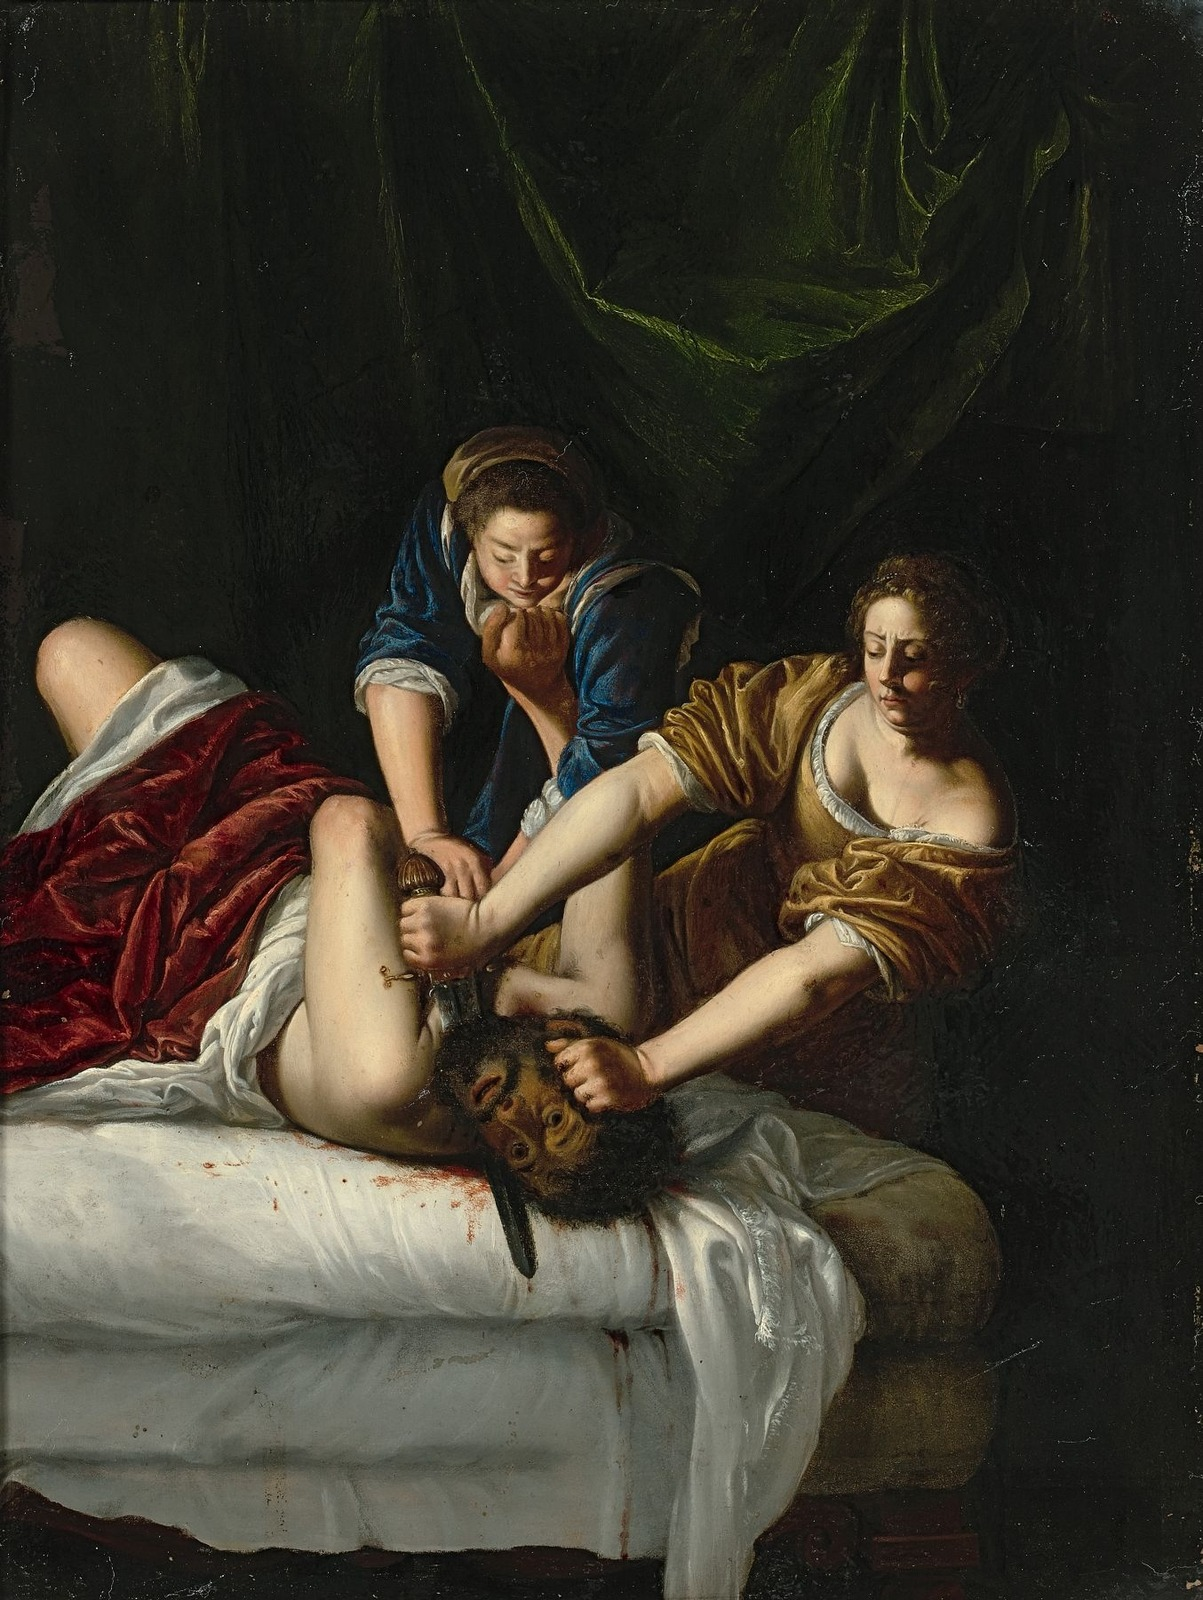 formal analysis of judith beheading holofernes The art in this stunning and visceral painting by artemisia gentileschi a terrified and determine judith, aided by her loyal maidservant, are frozen in a moment of horror and bravery as the two attempt to conceal the severed head of the villain holofernes.